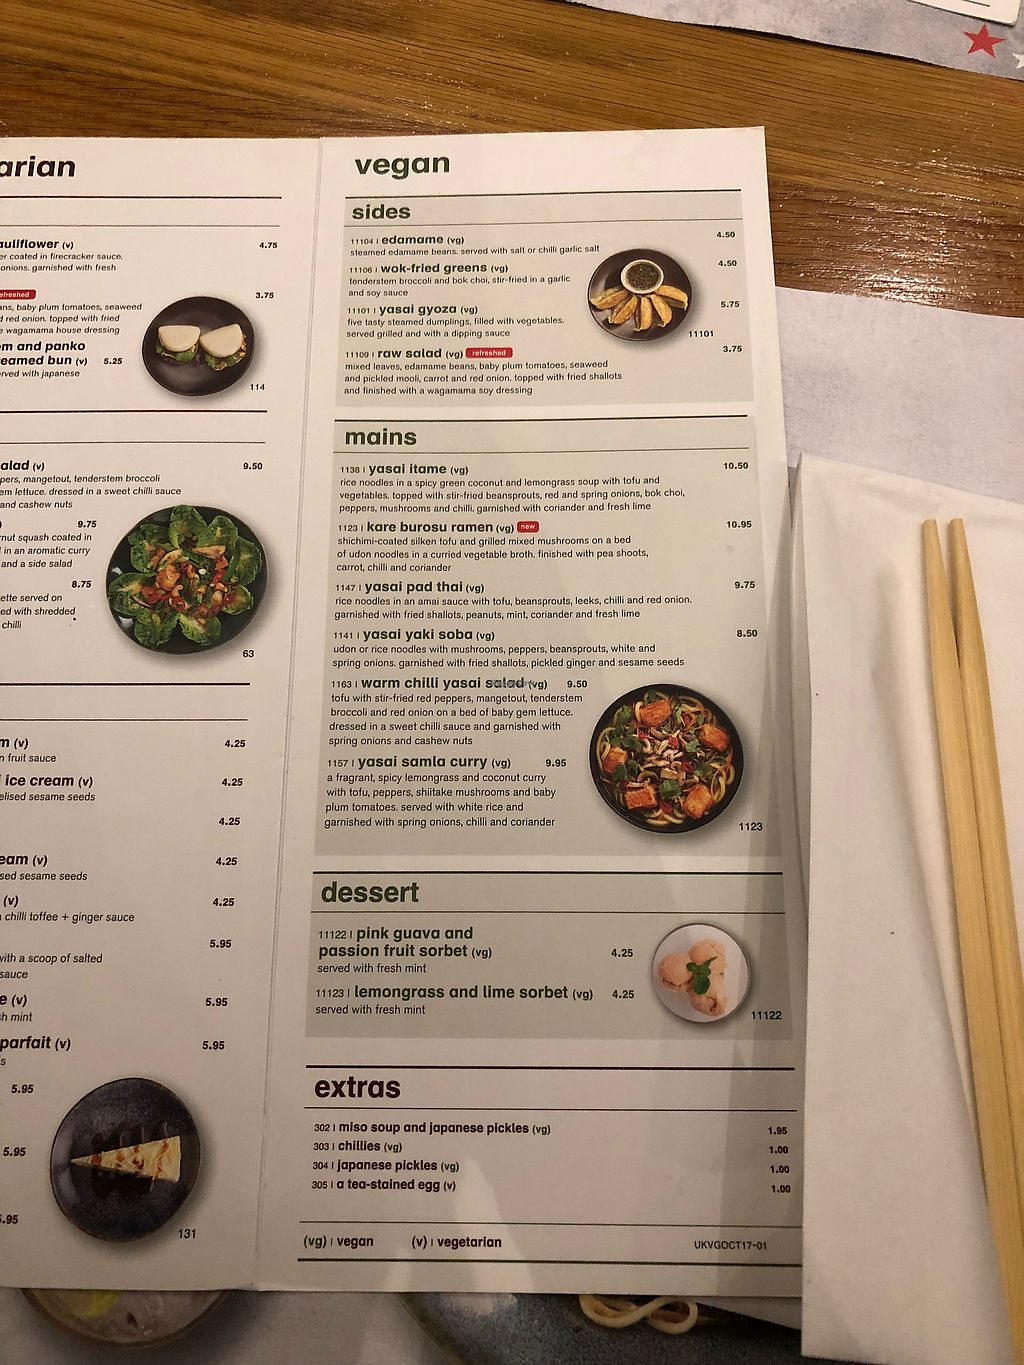 """Photo of Wagamama  by <a href=""""/members/profile/SkittenSmuggler"""">SkittenSmuggler</a> <br/>Vegan menu!  <br/> December 16, 2017  - <a href='/contact/abuse/image/82758/336238'>Report</a>"""